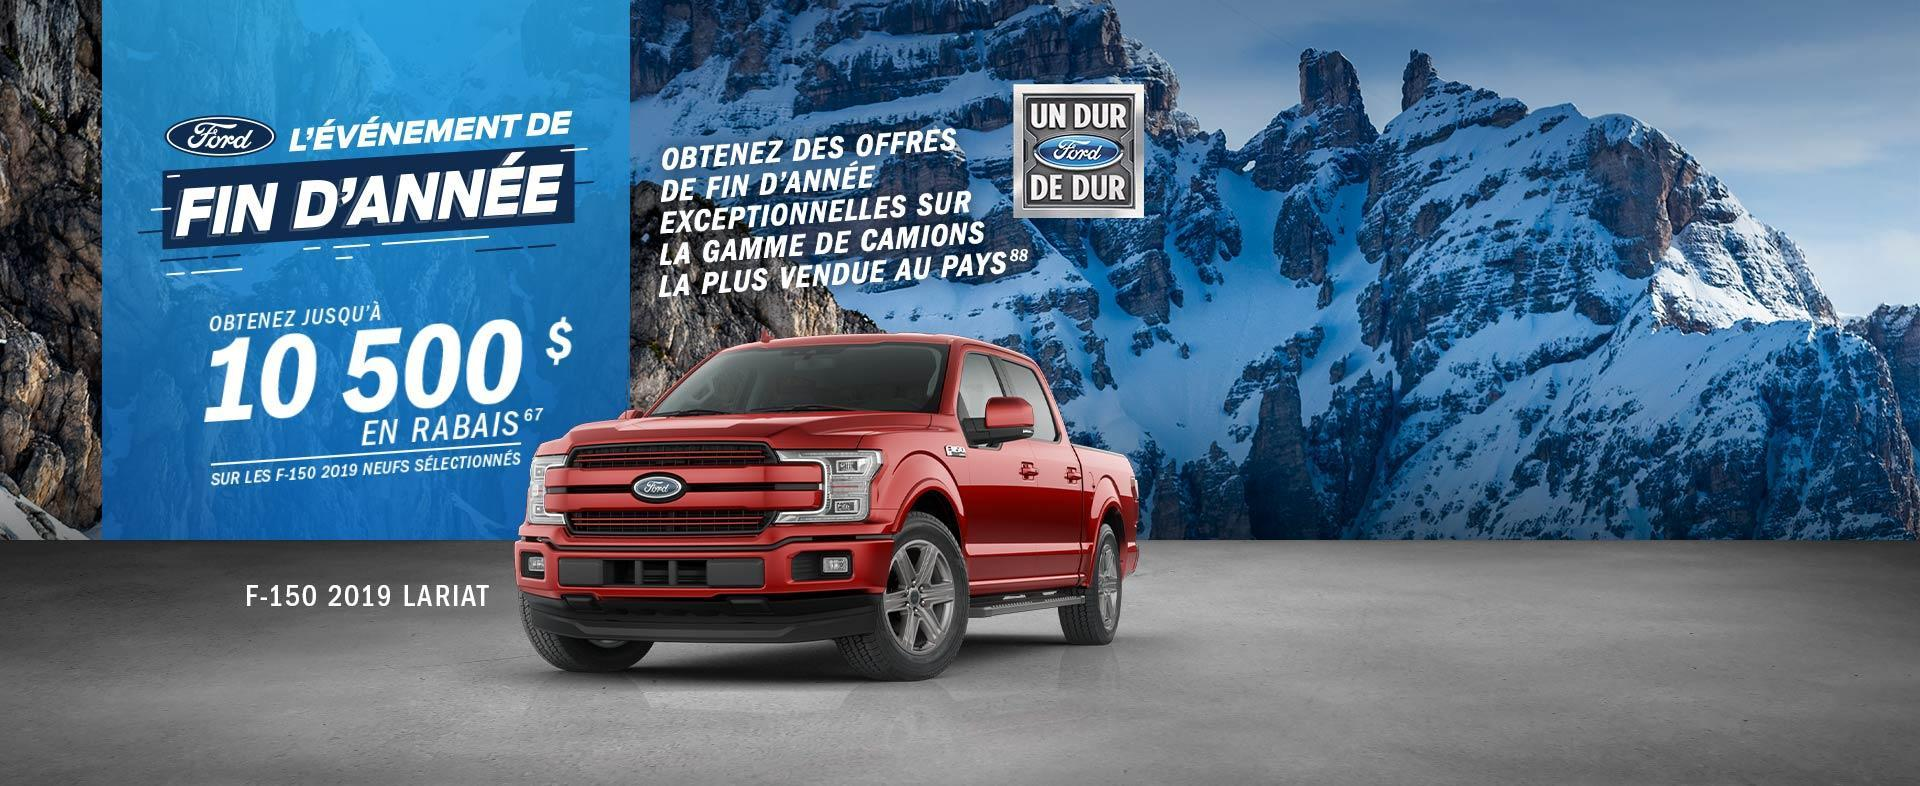 2019 Ford F-150 Year End Event